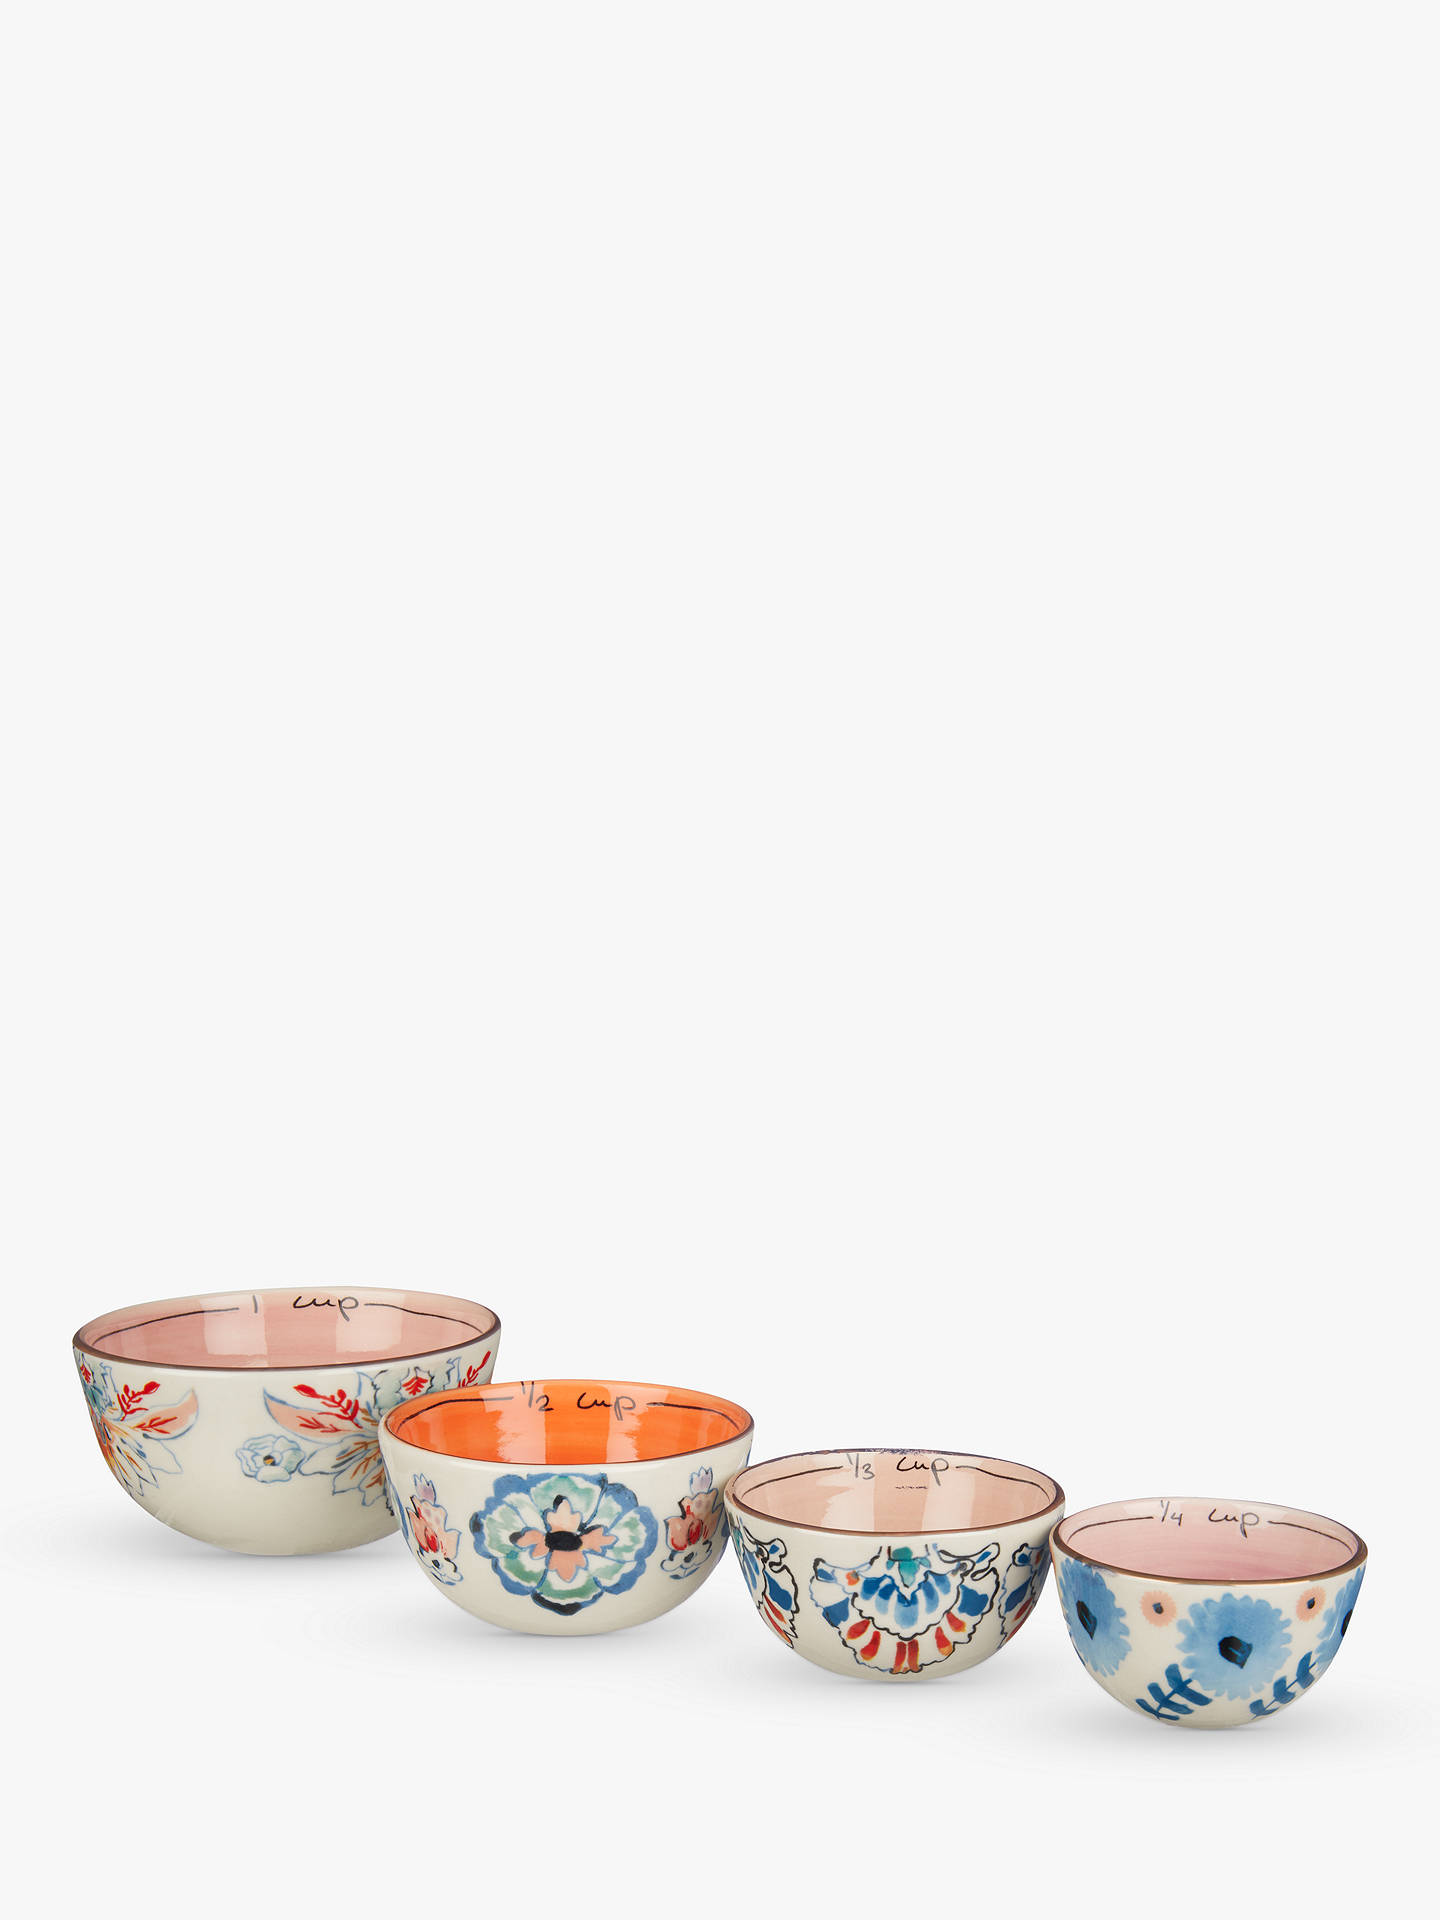 BuyAnthropologie Casana Nesting Measuring Cups, Set of 4 Online at johnlewis.com